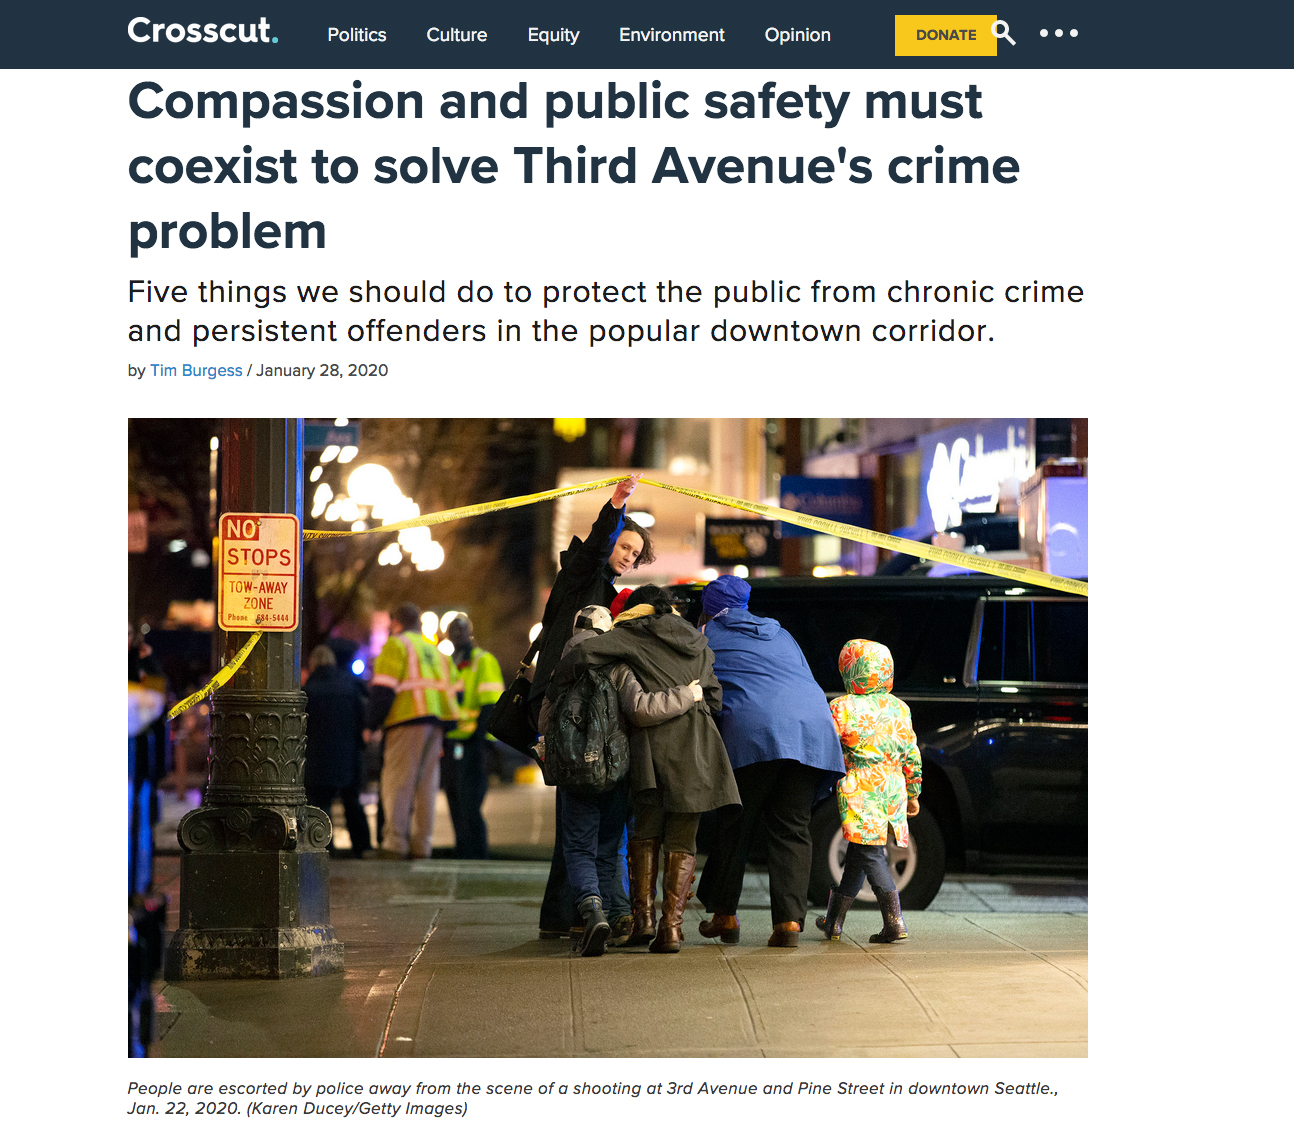 Compassion and public safety must coexist to solve Third Avenue's crime problem, Crosscut, January 28, 2020